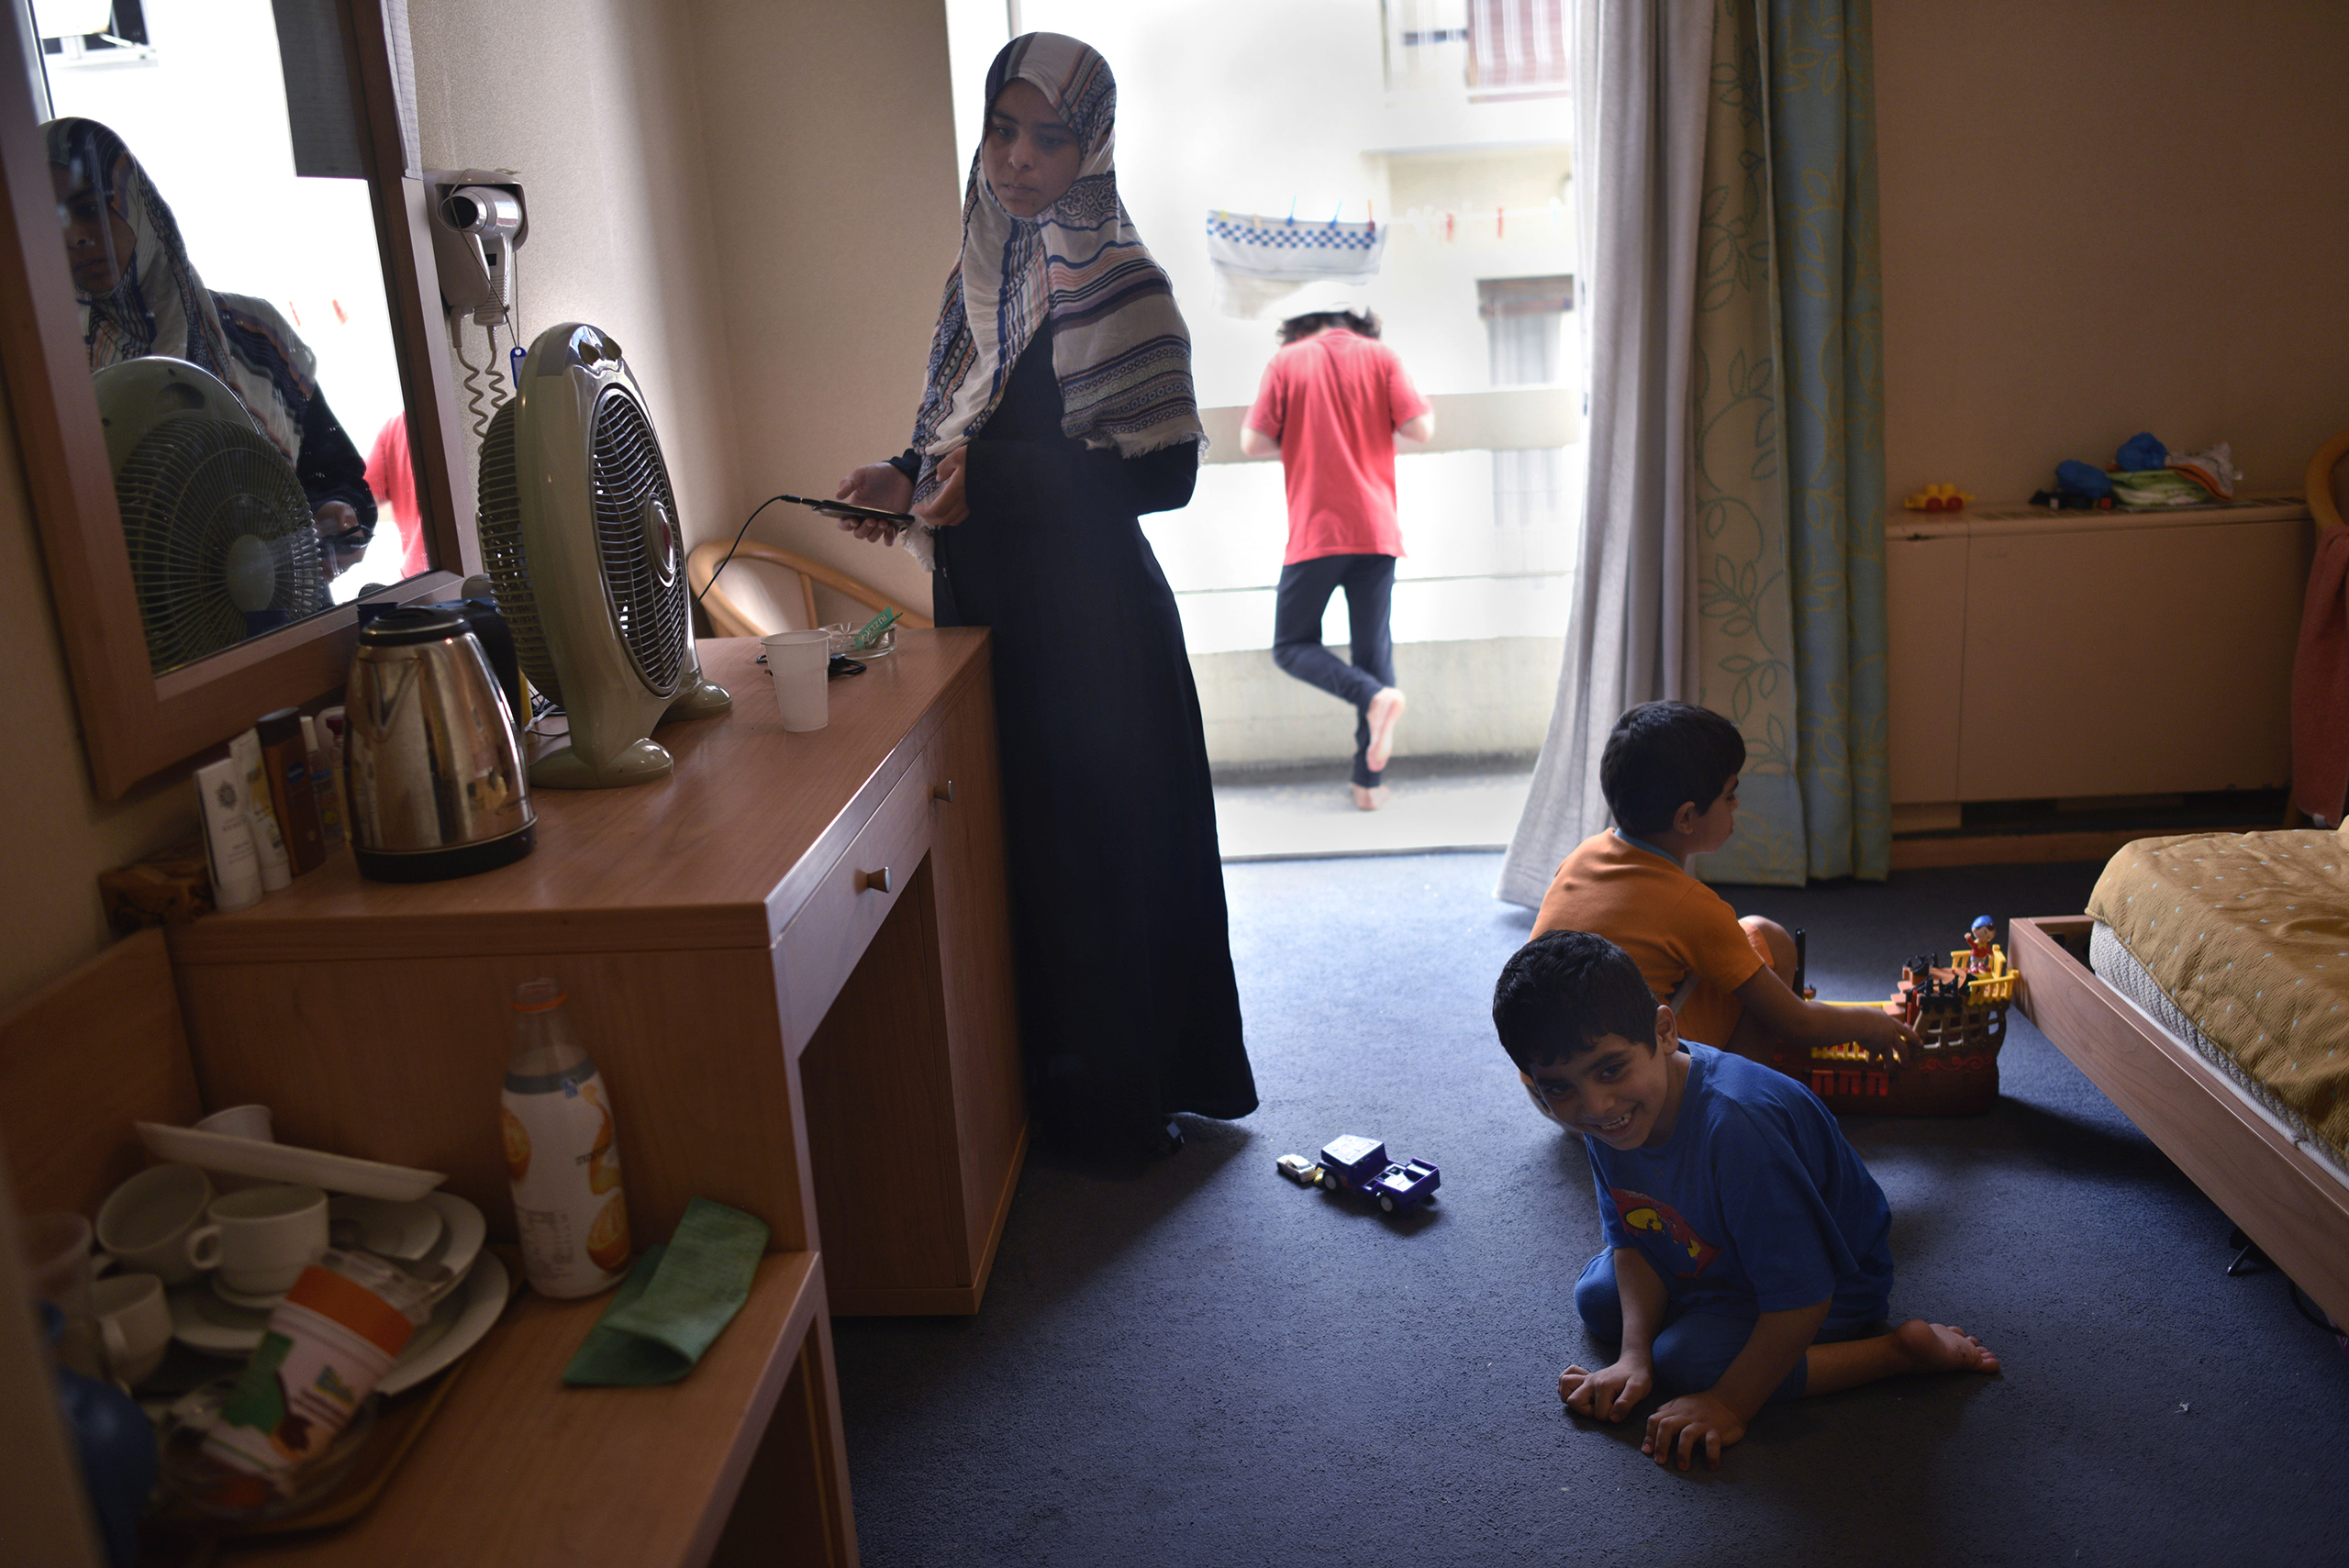 Baida, 27, from Raqqa, Syria, keeps an eye on her three children as they play in her family's room at the hotel. Her youngest son, 7-year-old Ahmed, has cerebral palsy and cannot walk. He has a wheelchair, but because the elevators are not working in the eight-floor building, the family keeps the wheelchair downstairs in the lobby.